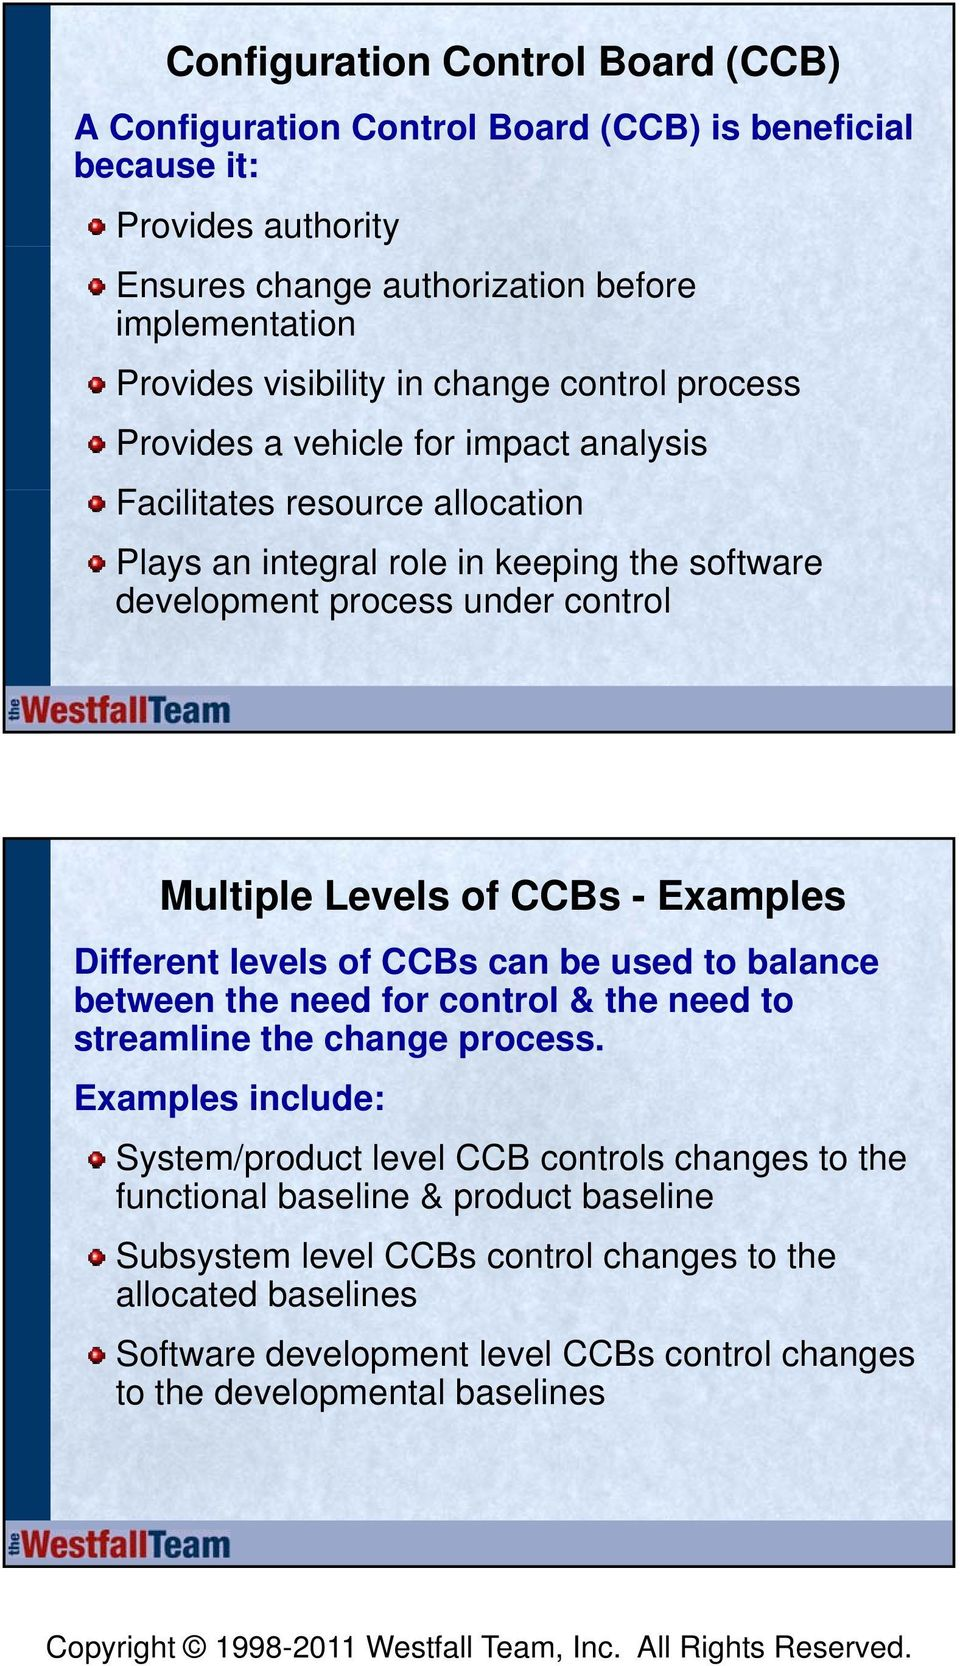 Examples Different levels of CCBs can be used to balance between the need for control & the need to streamline the change process.